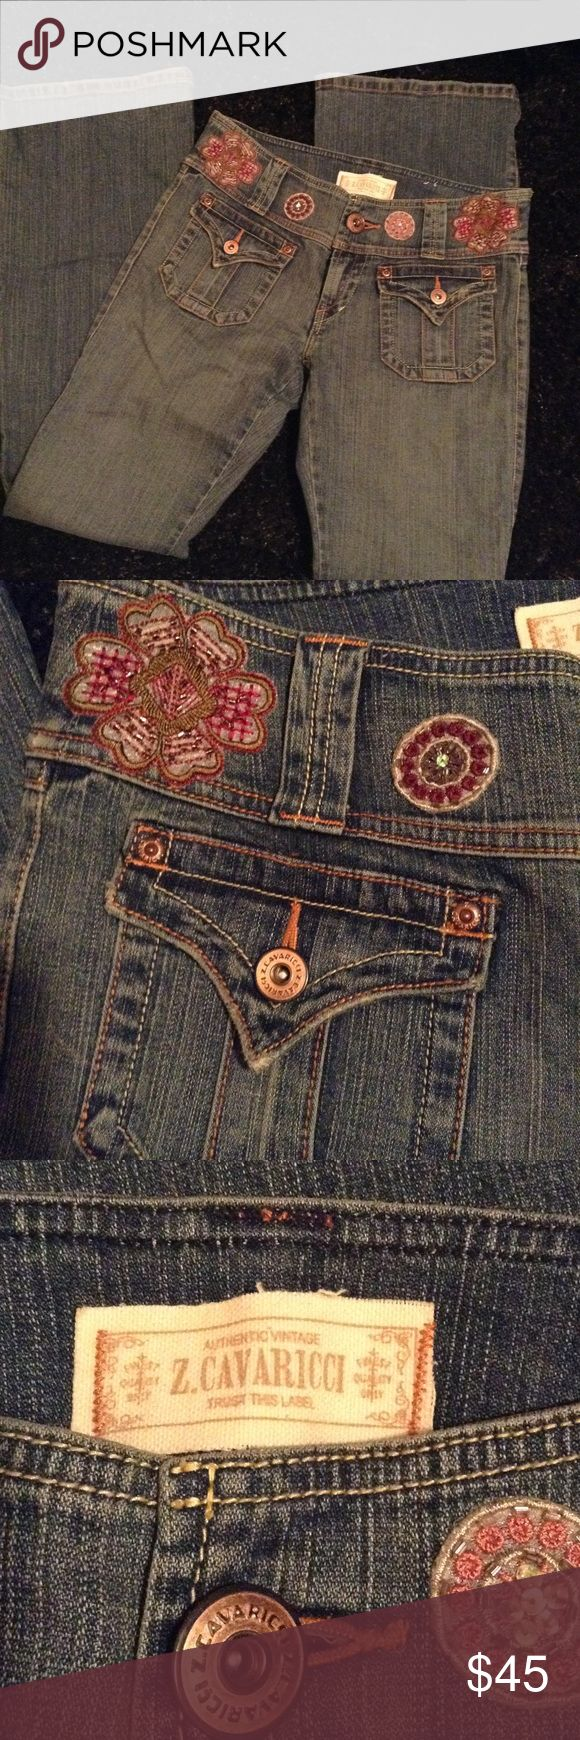 Vintage Z Cavaricci jeans Step back in time to z Cavaricci embroidered and beaded trim on front and back, flare leg with button rear pockets and high cut waisr. inseam 33 size 9 Z. Cavaricci Jeans Flare & Wide Leg